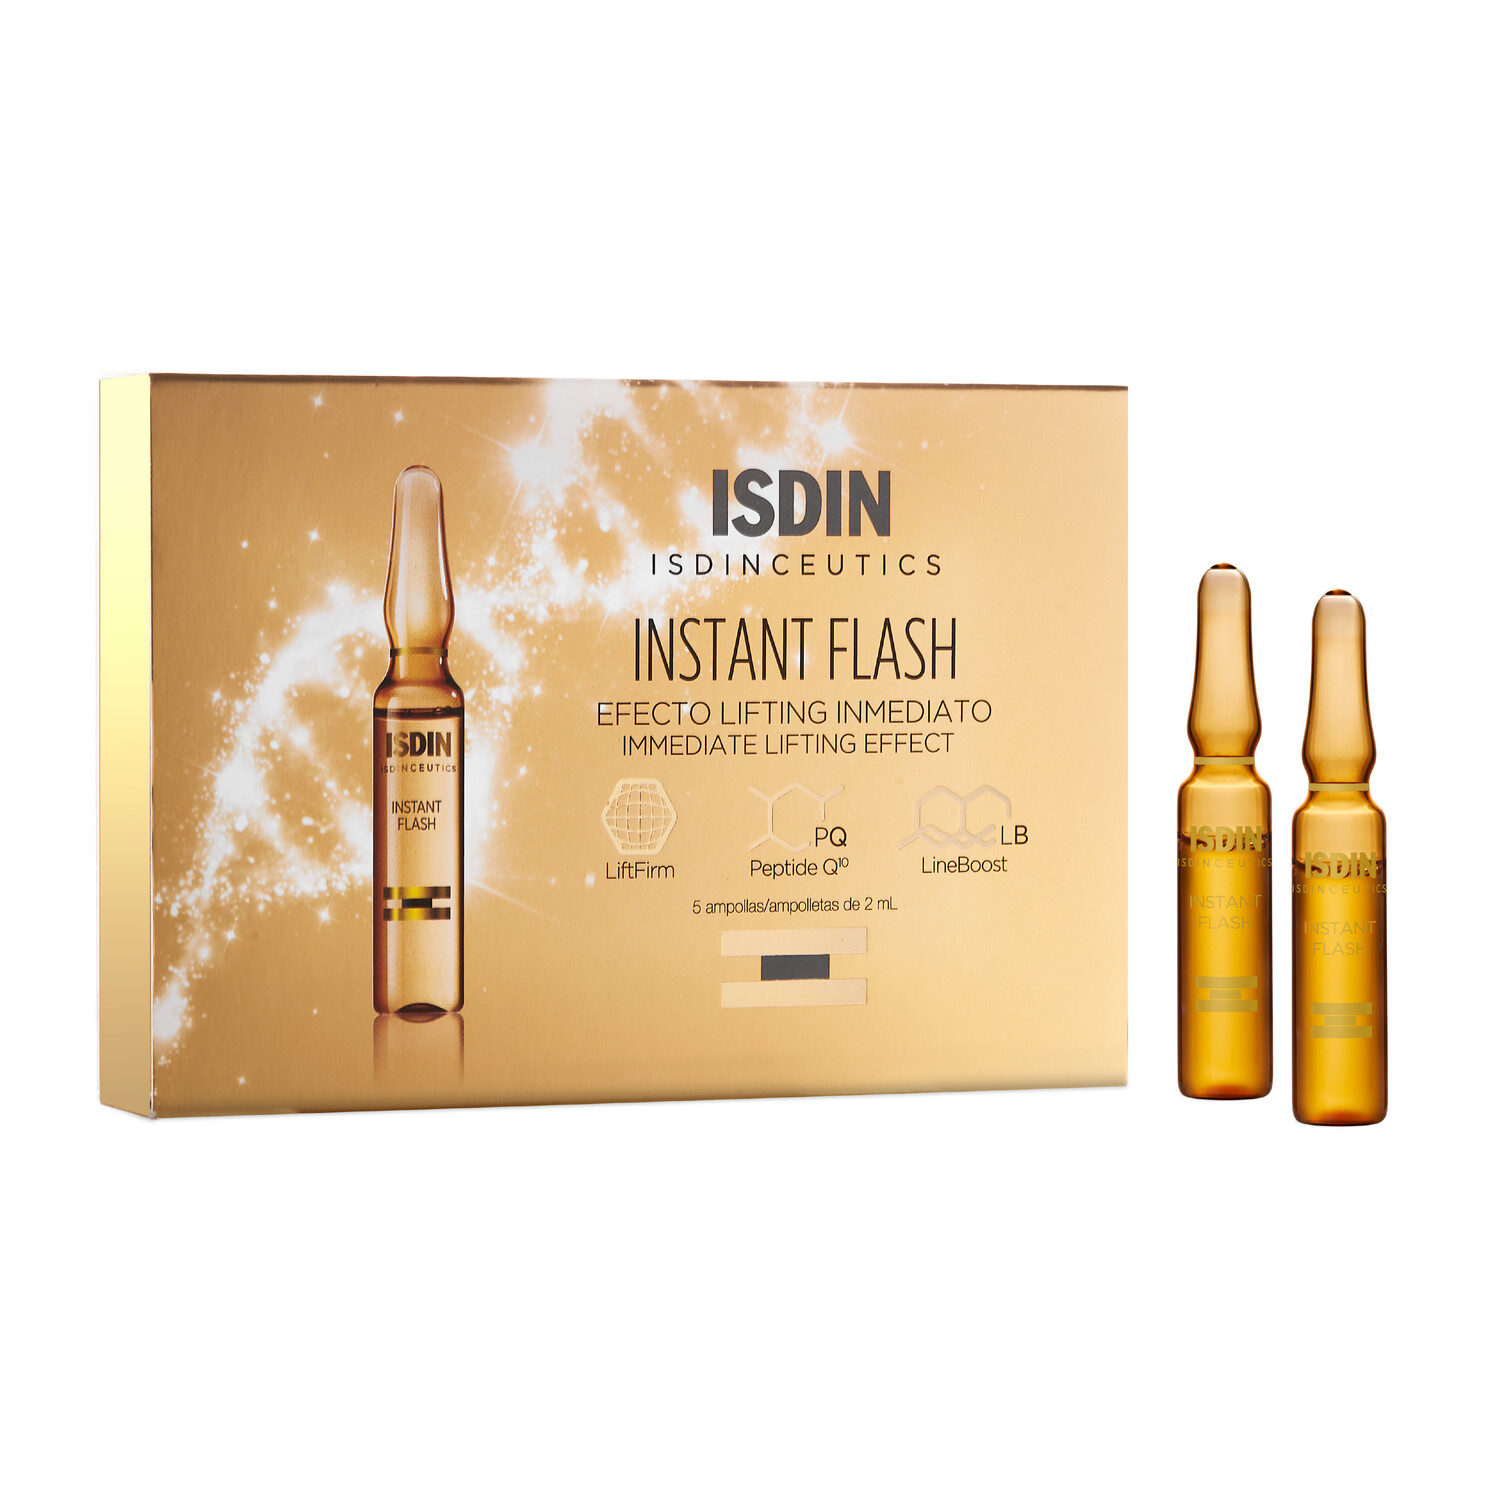 ISDINCEUTICS Instant Flash